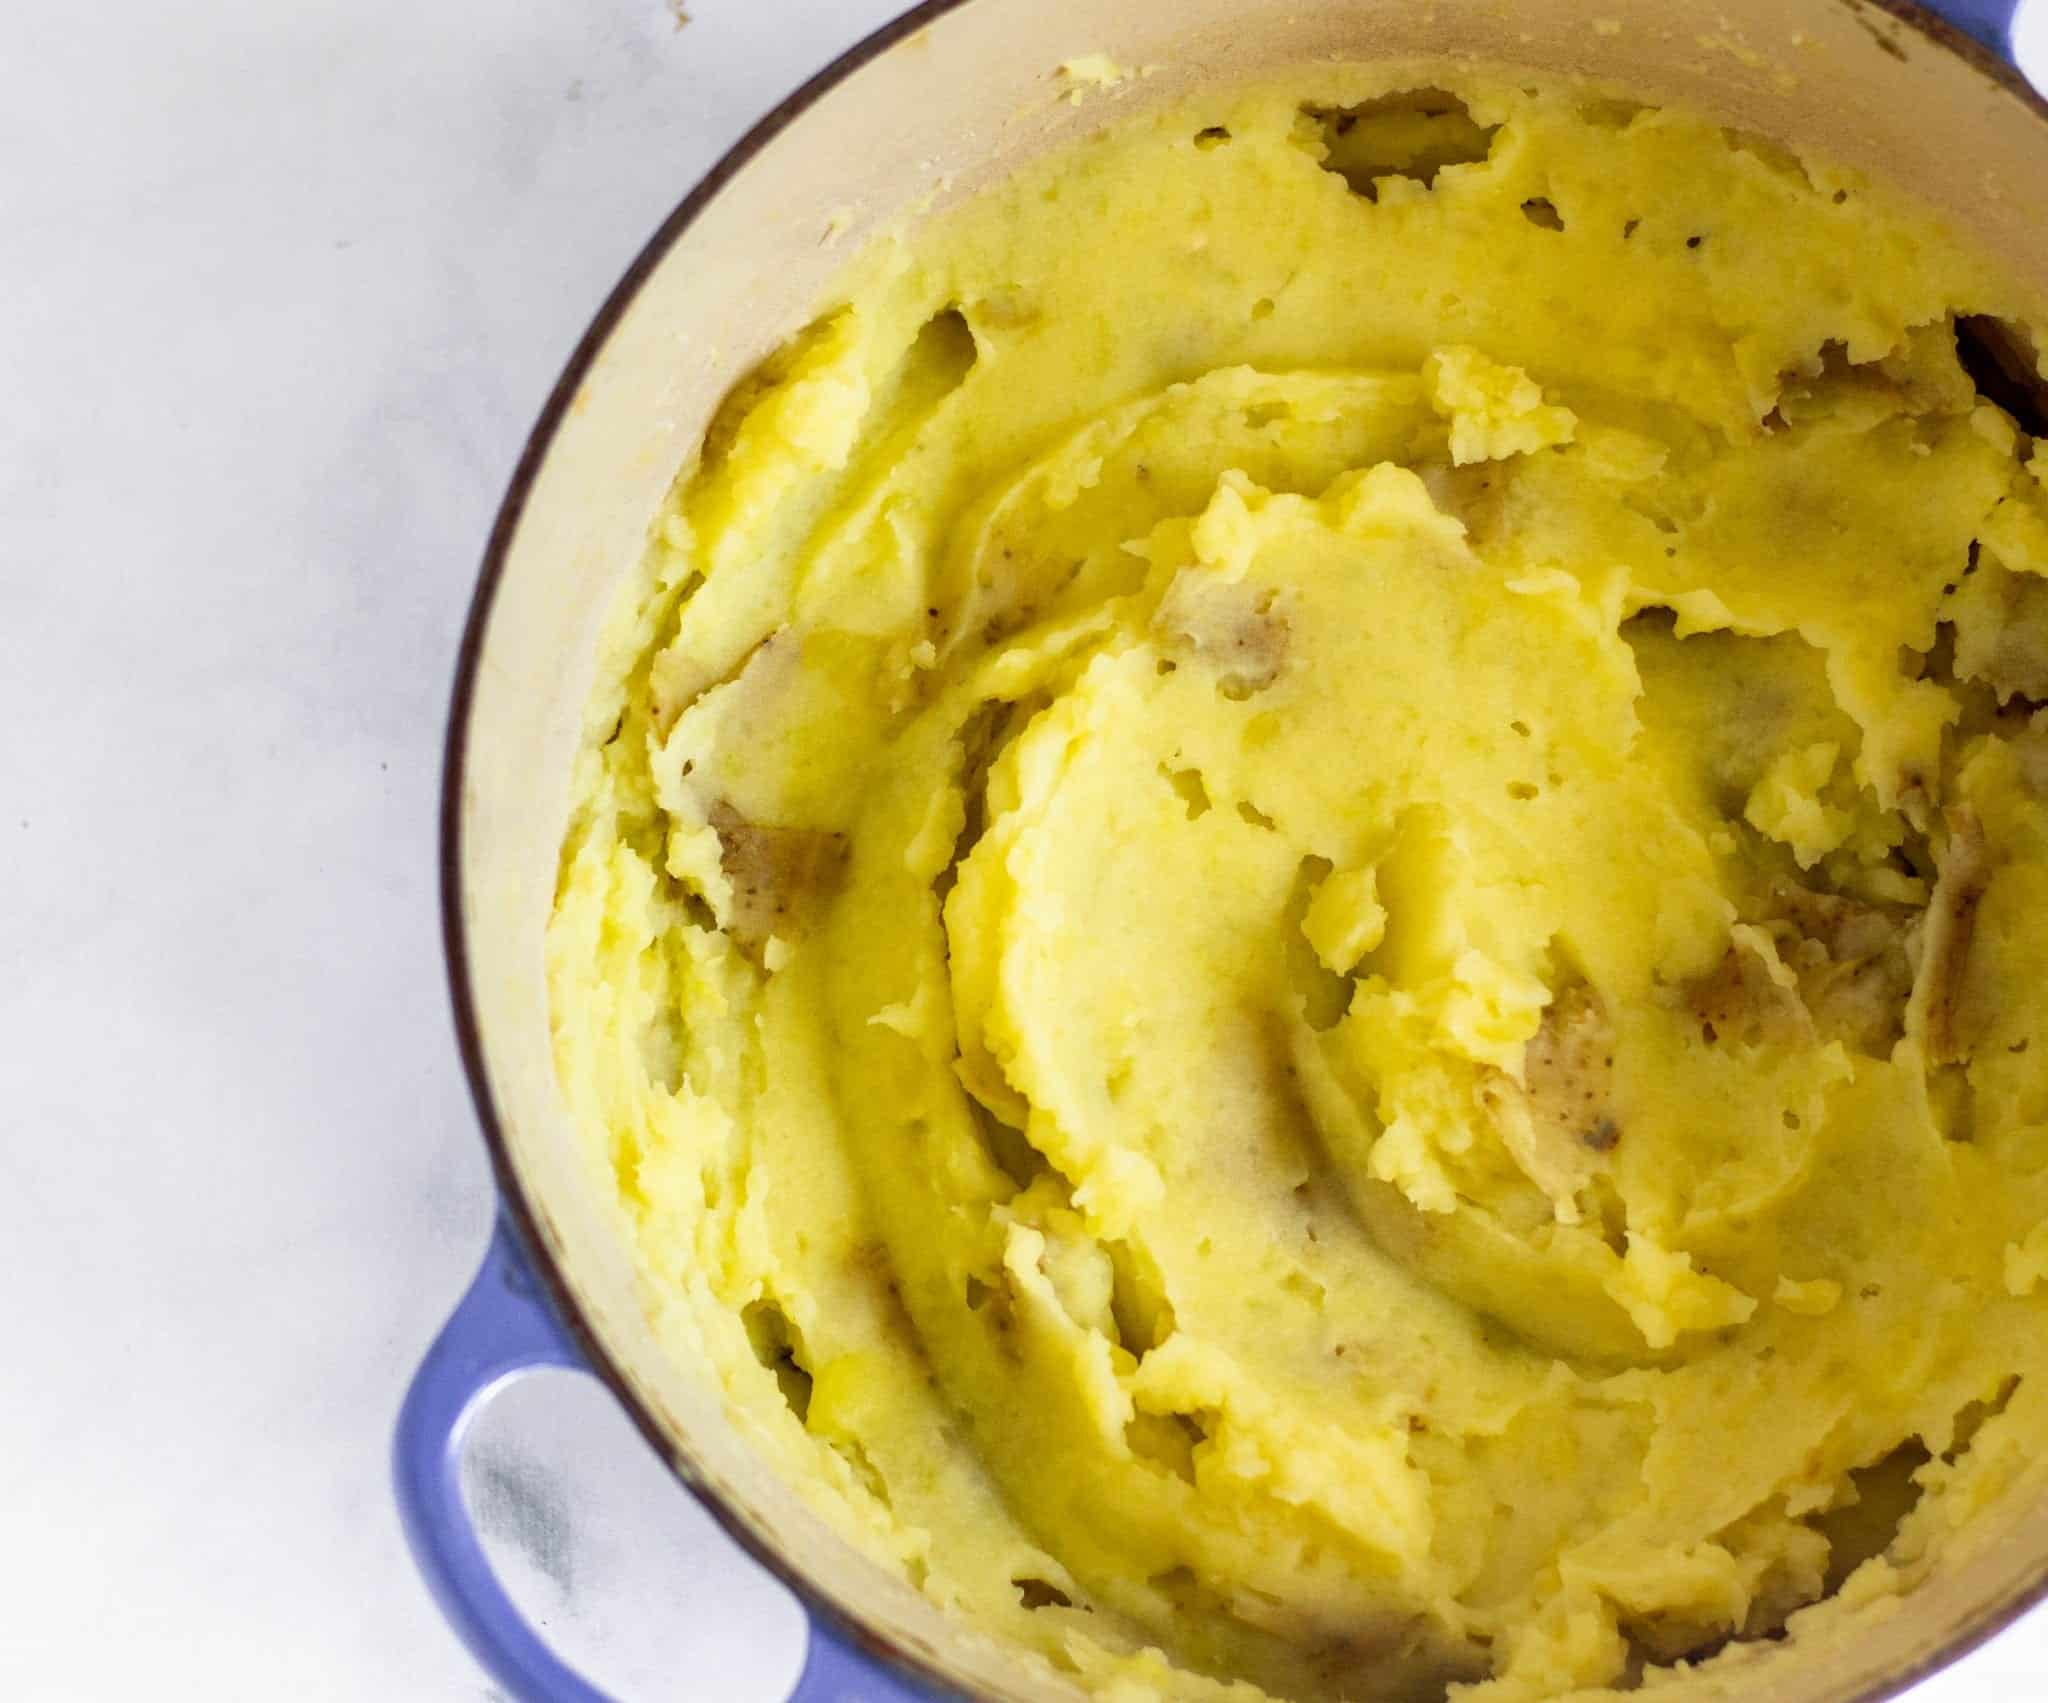 Low FODMAP Olive Oil Mashed Potatoes #lowfodmaprecipe #oliveoil #mashedpotatoes #dairyfreethanksgiving #lowfodmapside